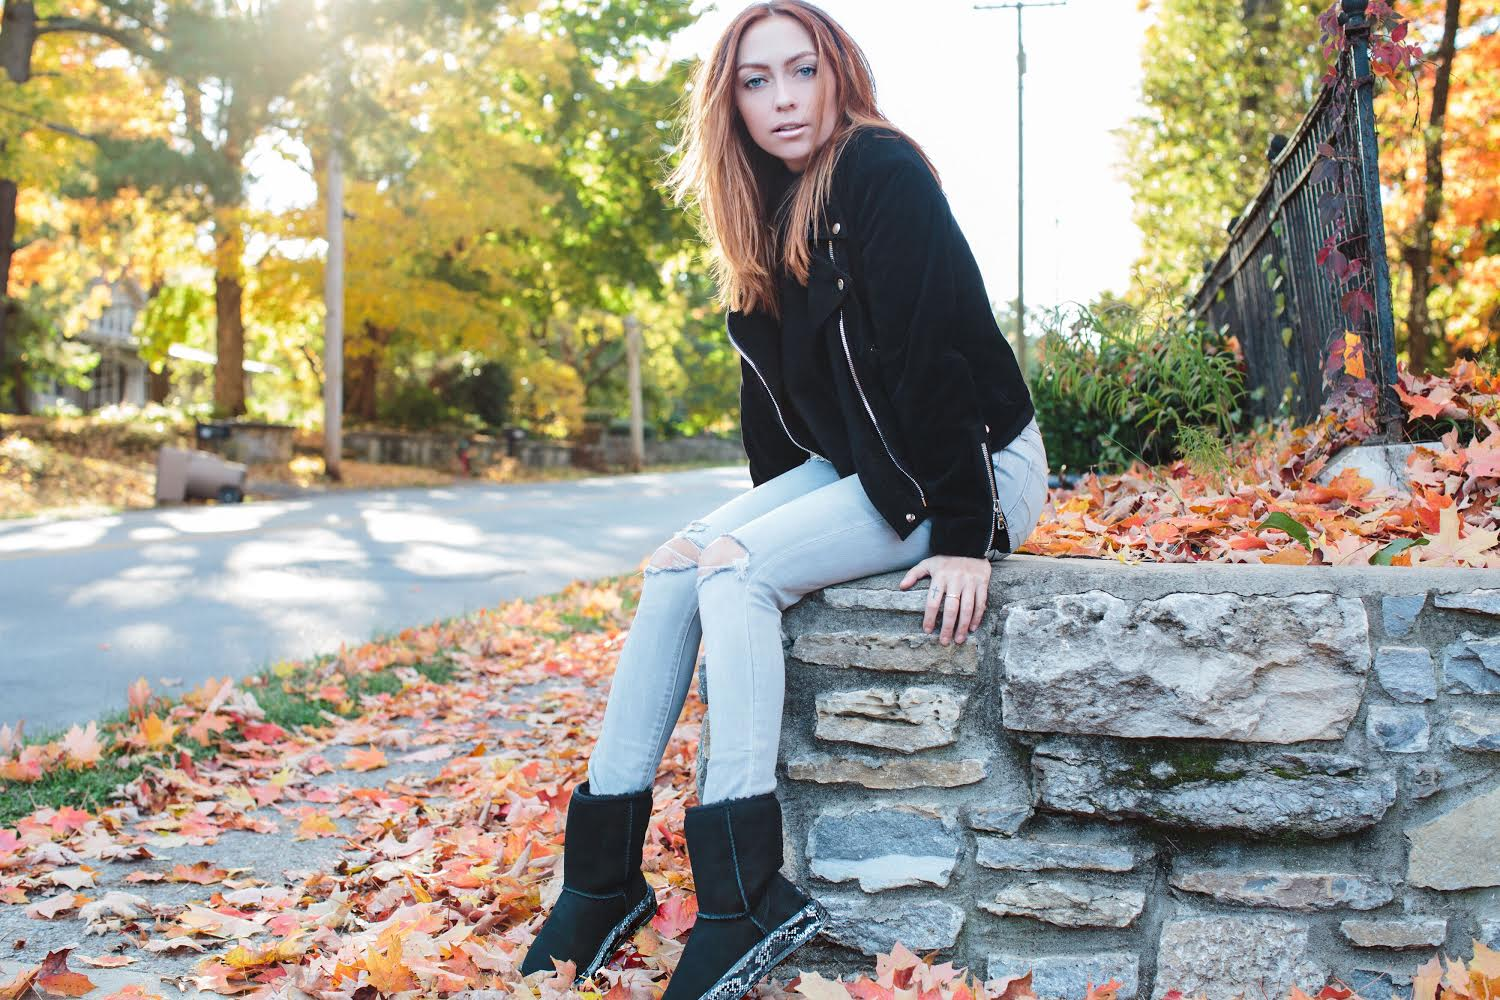 Jacket - Reformation | Jeans - American Eagle | Boots - Uggs and  Homage wraps  ||  photos by Susannah Brittany